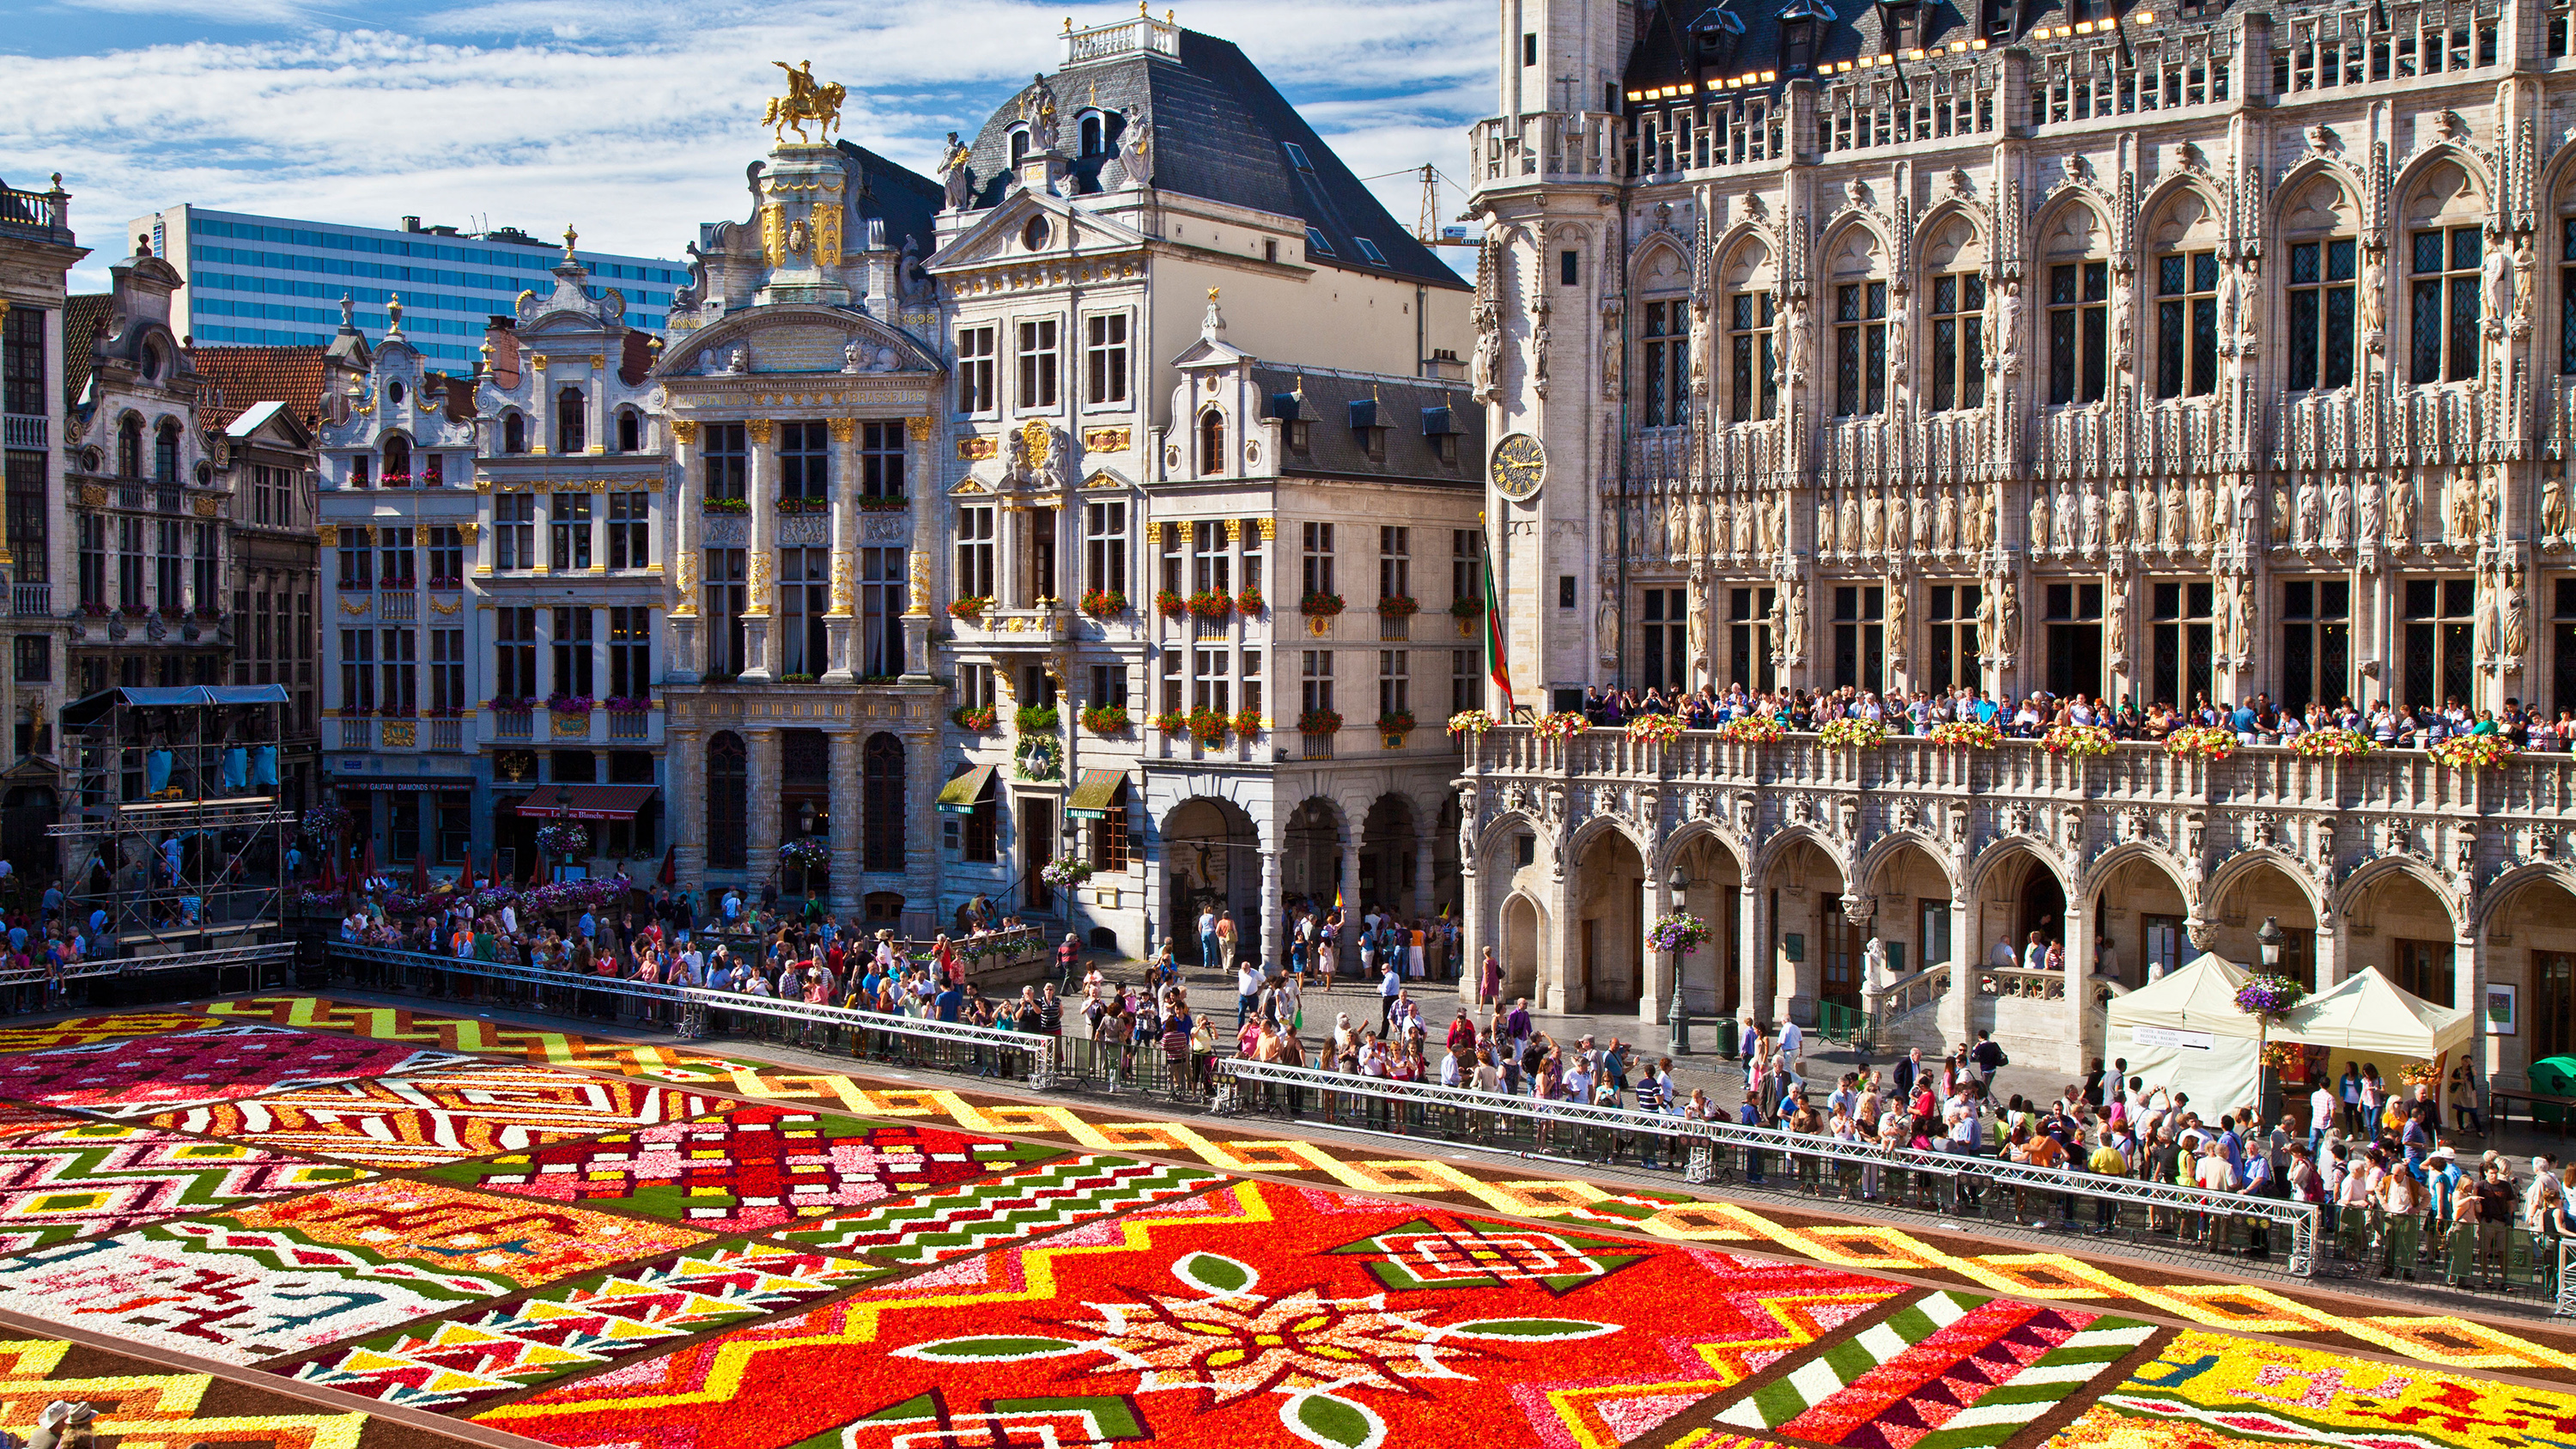 2012 Flower Carpet, Tapis de Fleurs, in front of the City Hall in the Grand-Place, Brussels